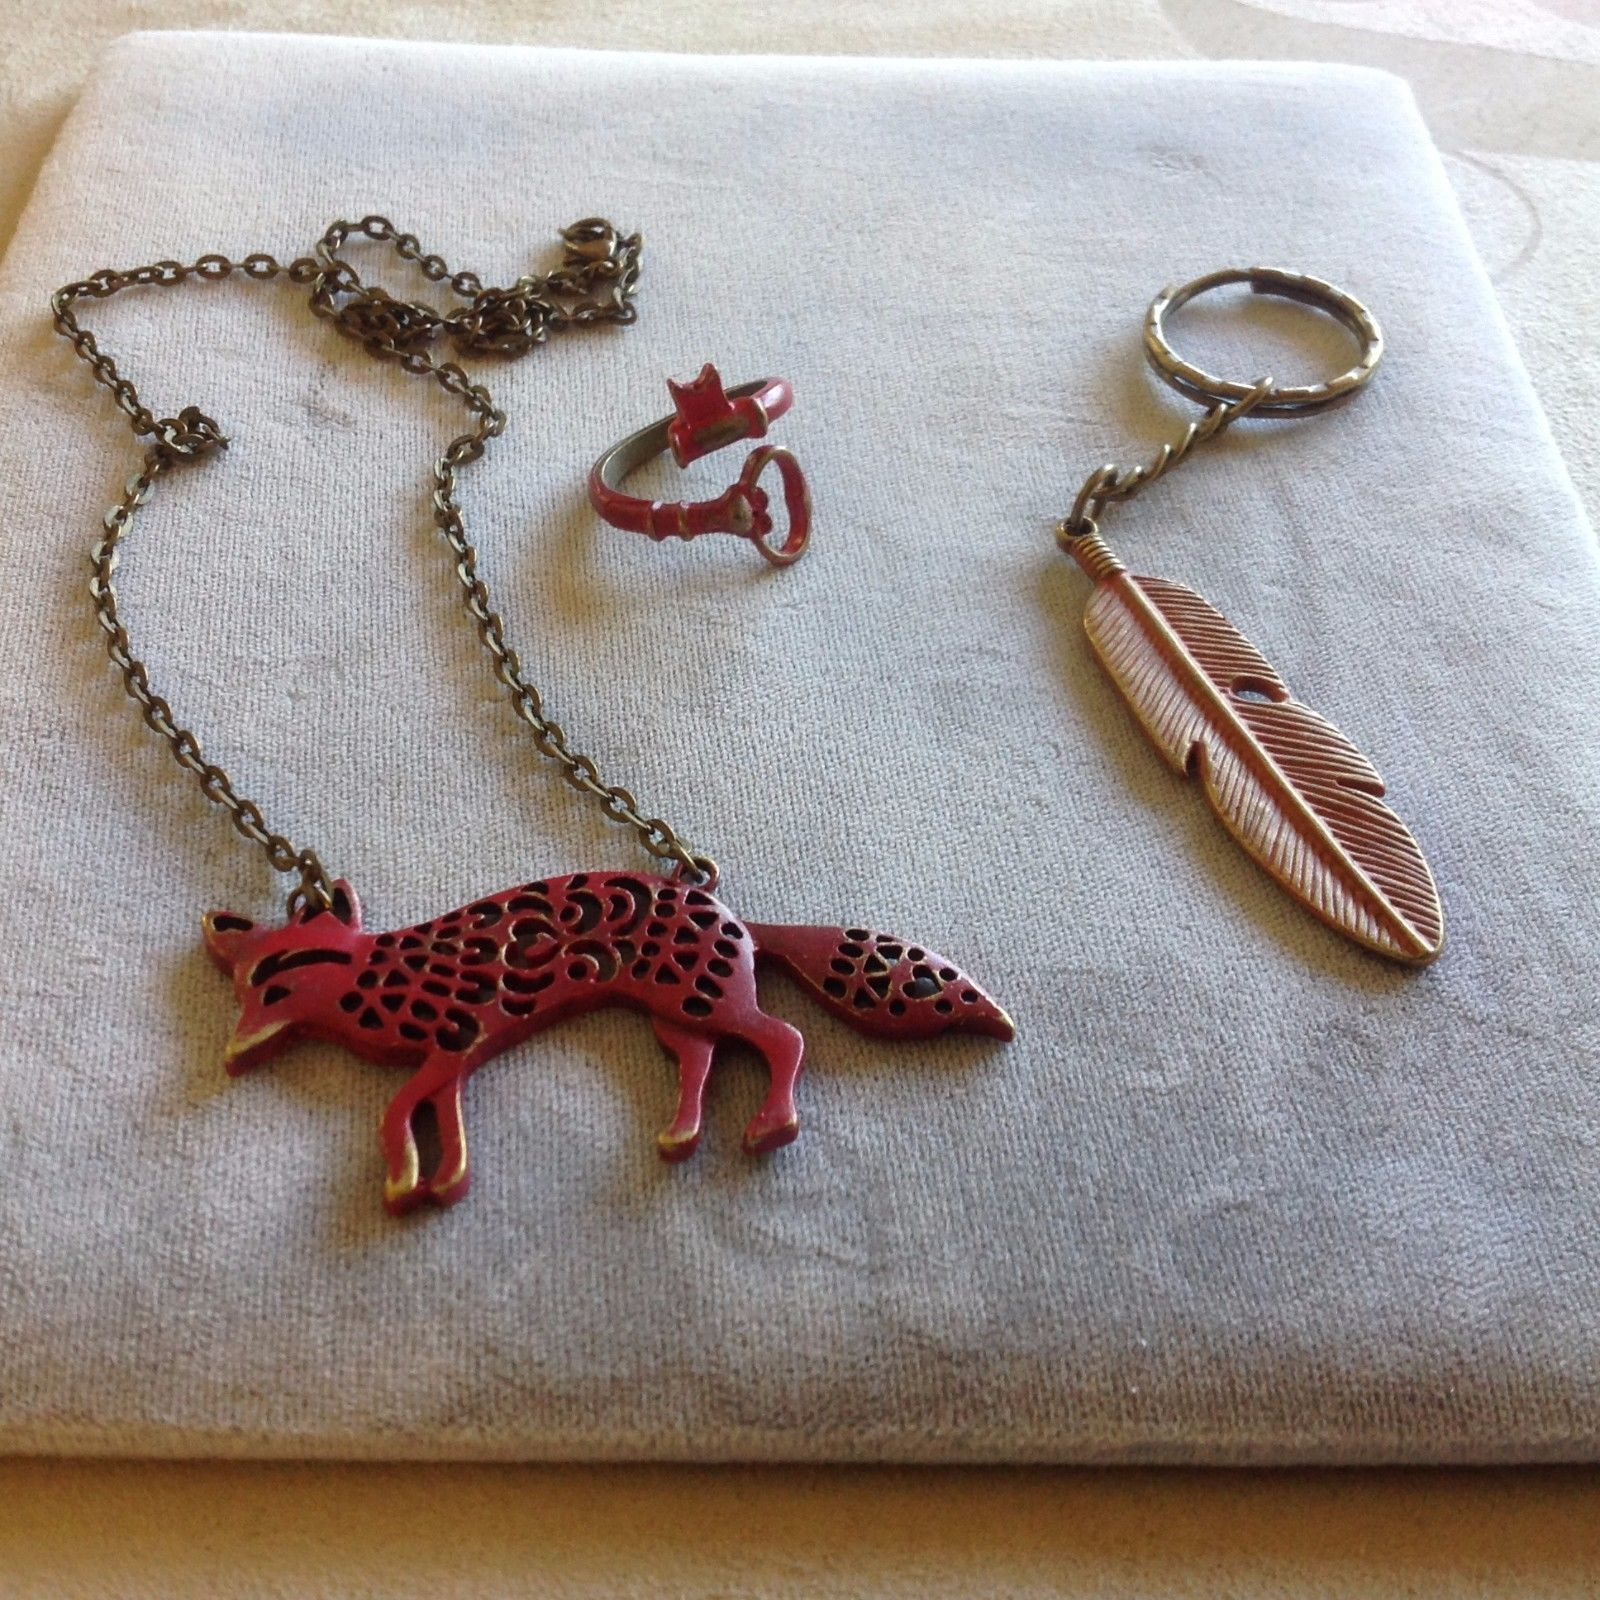 New Set of Accessories Red Coyote Necklace Ring Keychain Orange Red Key Ring